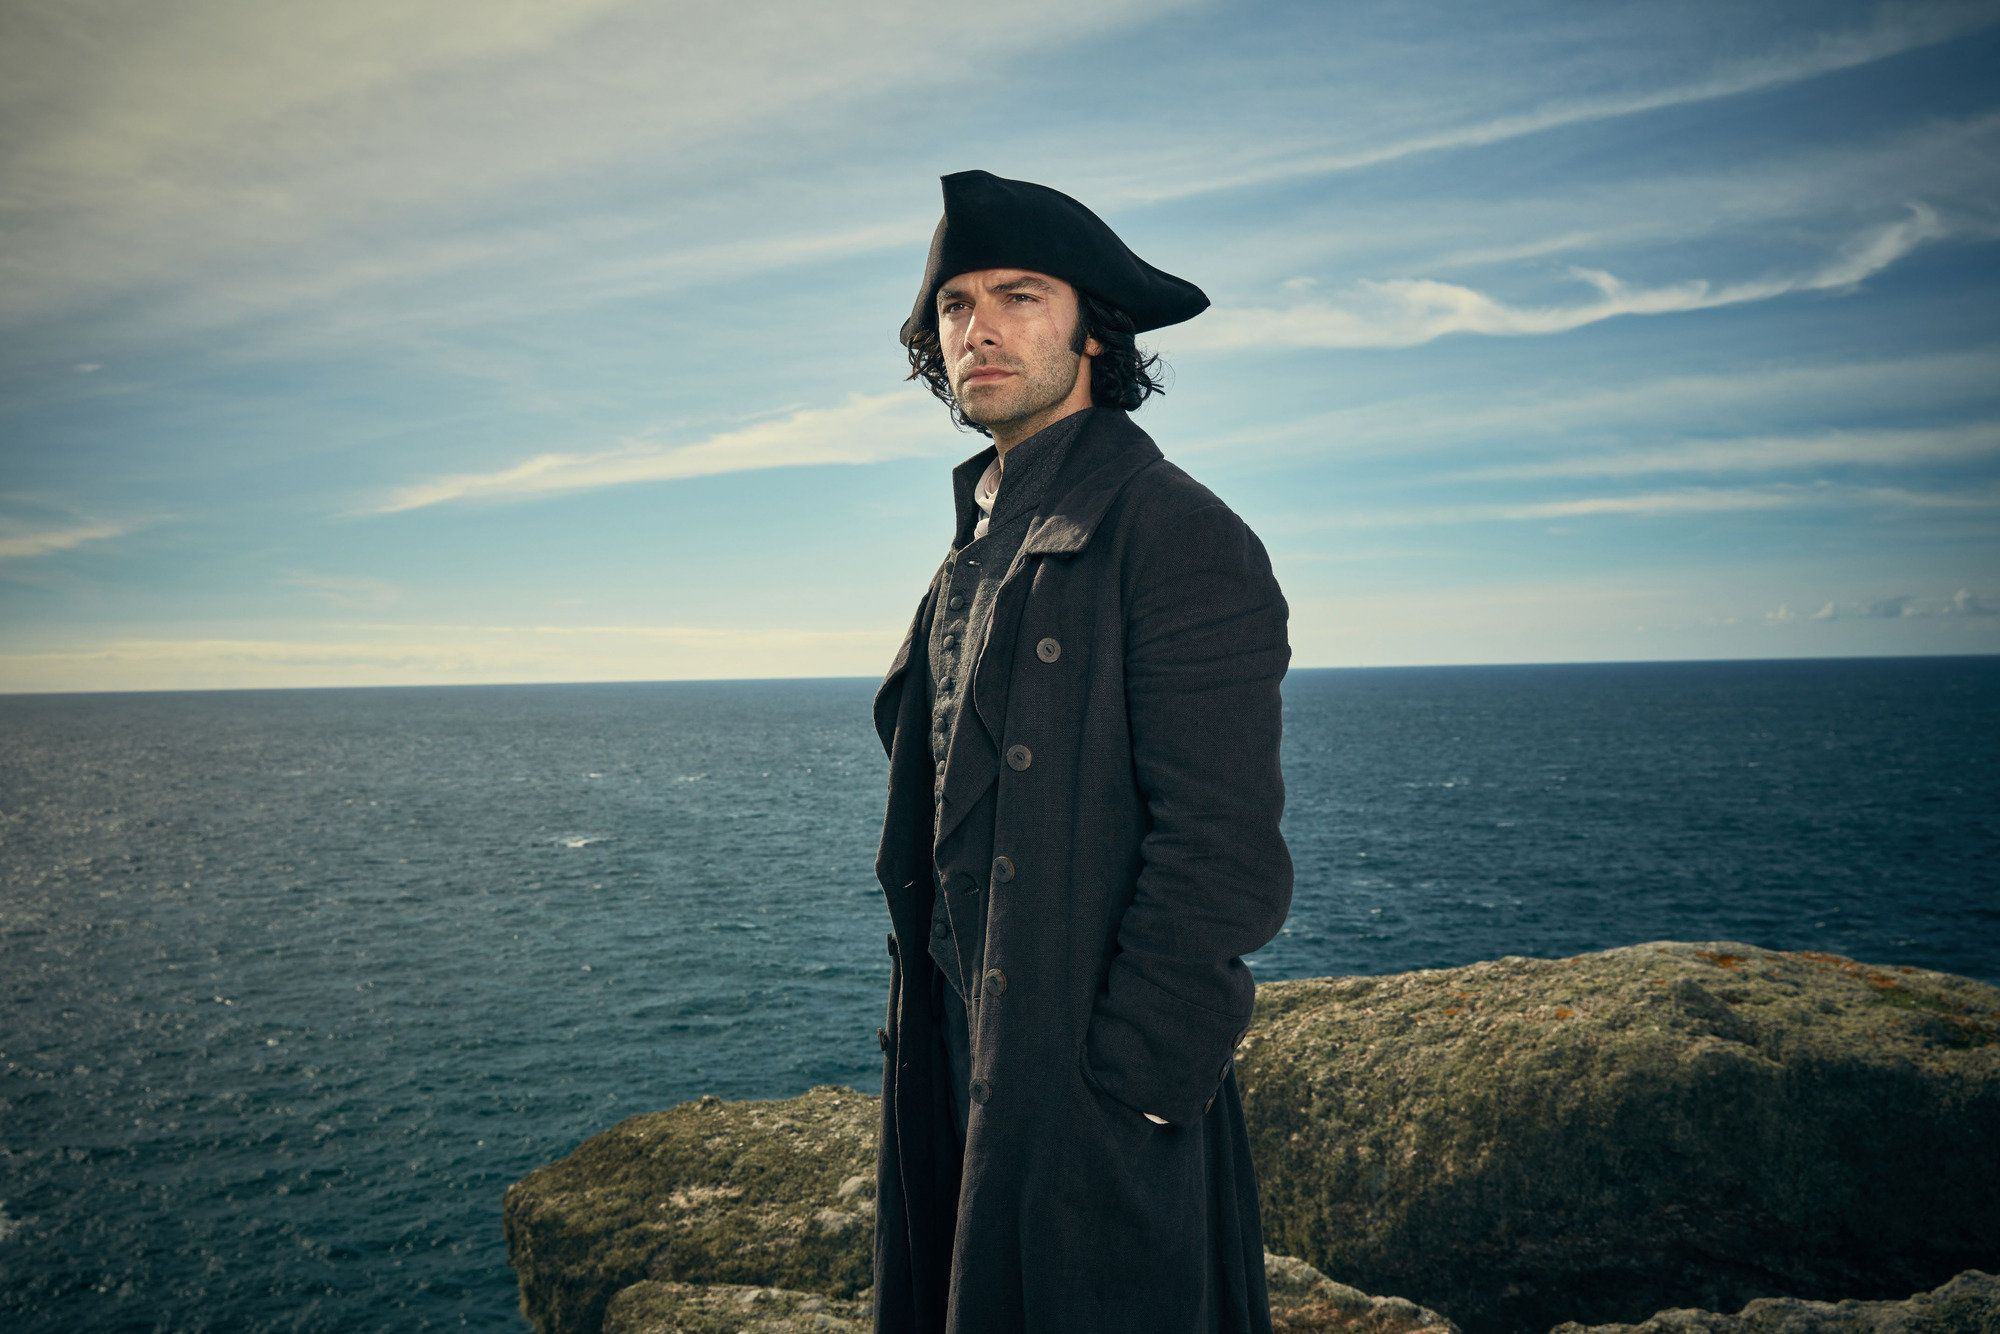 'Poldark' Character Set To Be Replaced By New Actor In Series